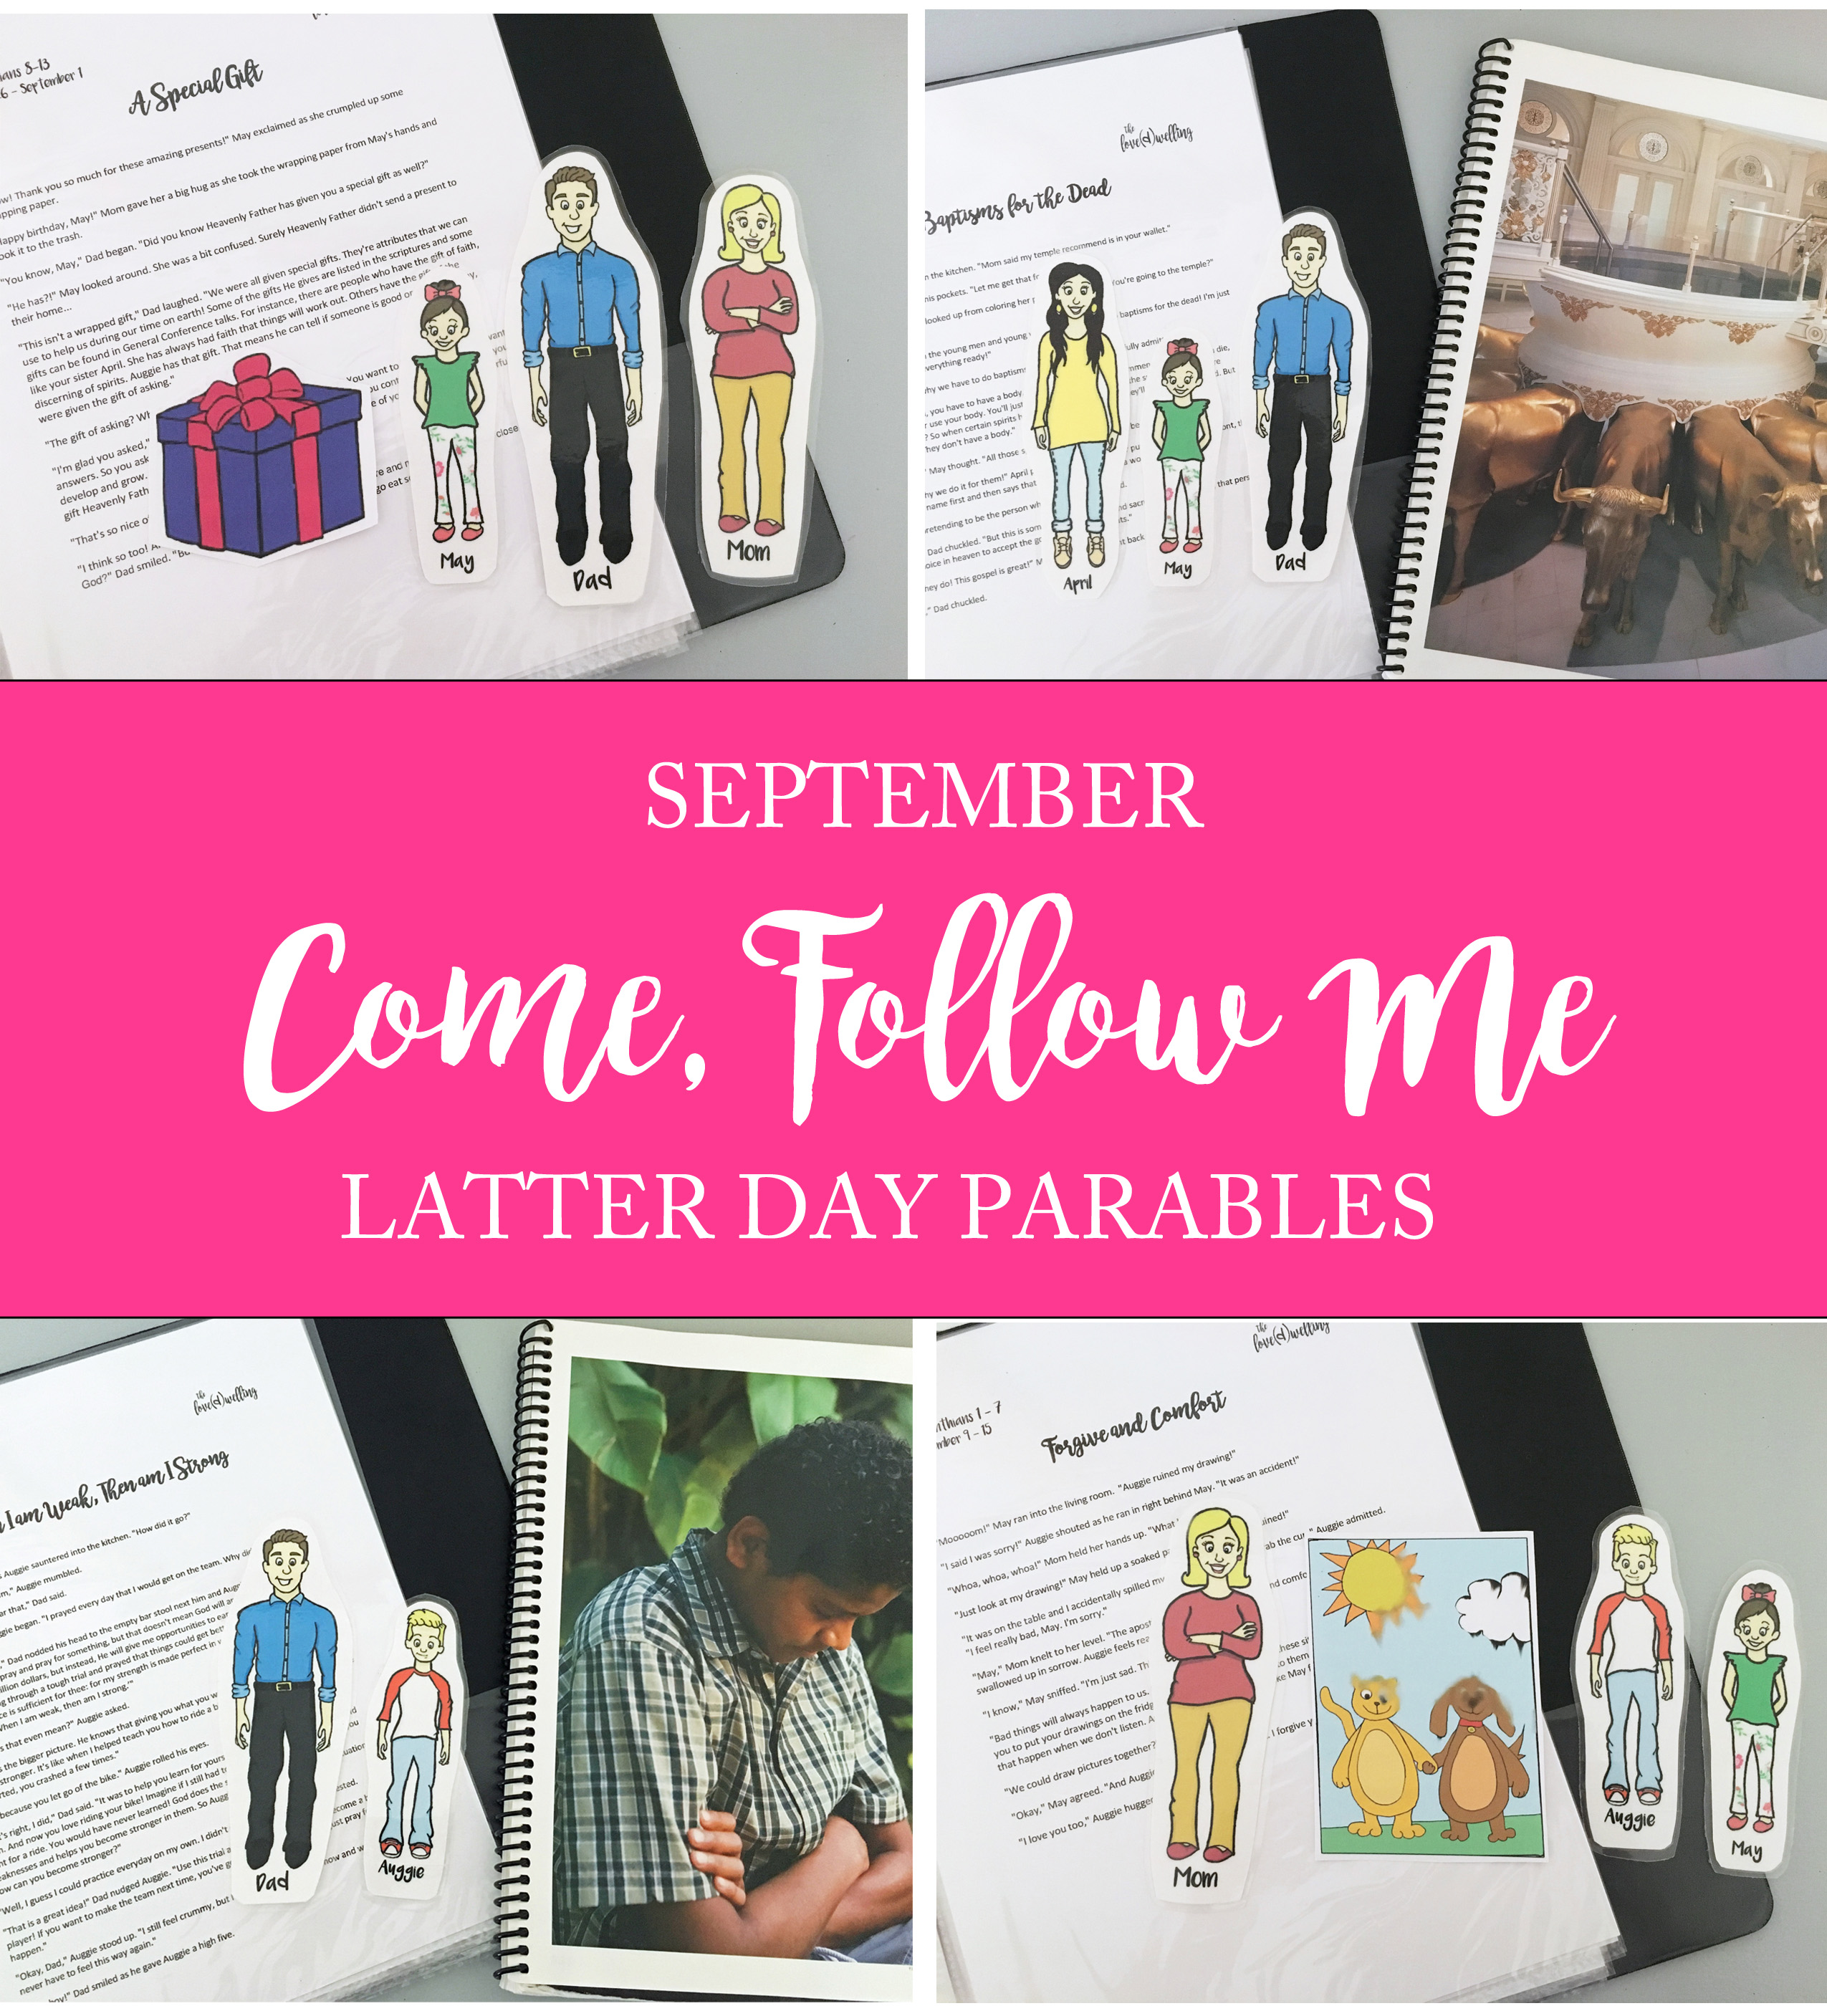 Come, Follow Me FHE: September 2019 - the love(d)welling